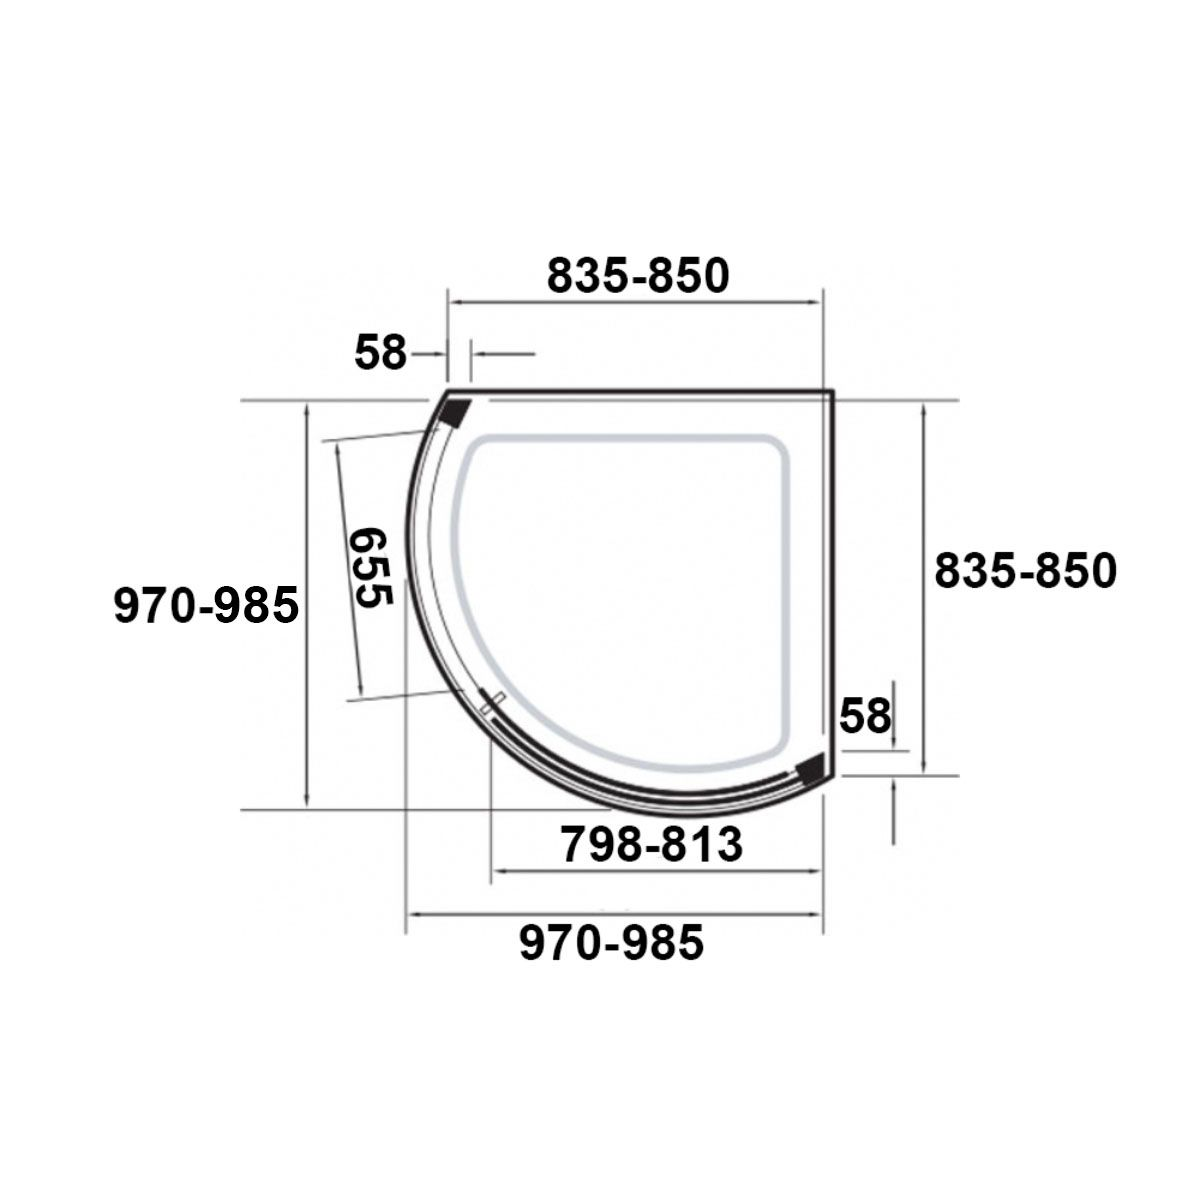 kudosoriginalcurvedslidingshowerenclosuresideaccess1000x1000withconcept2showertraydimensions